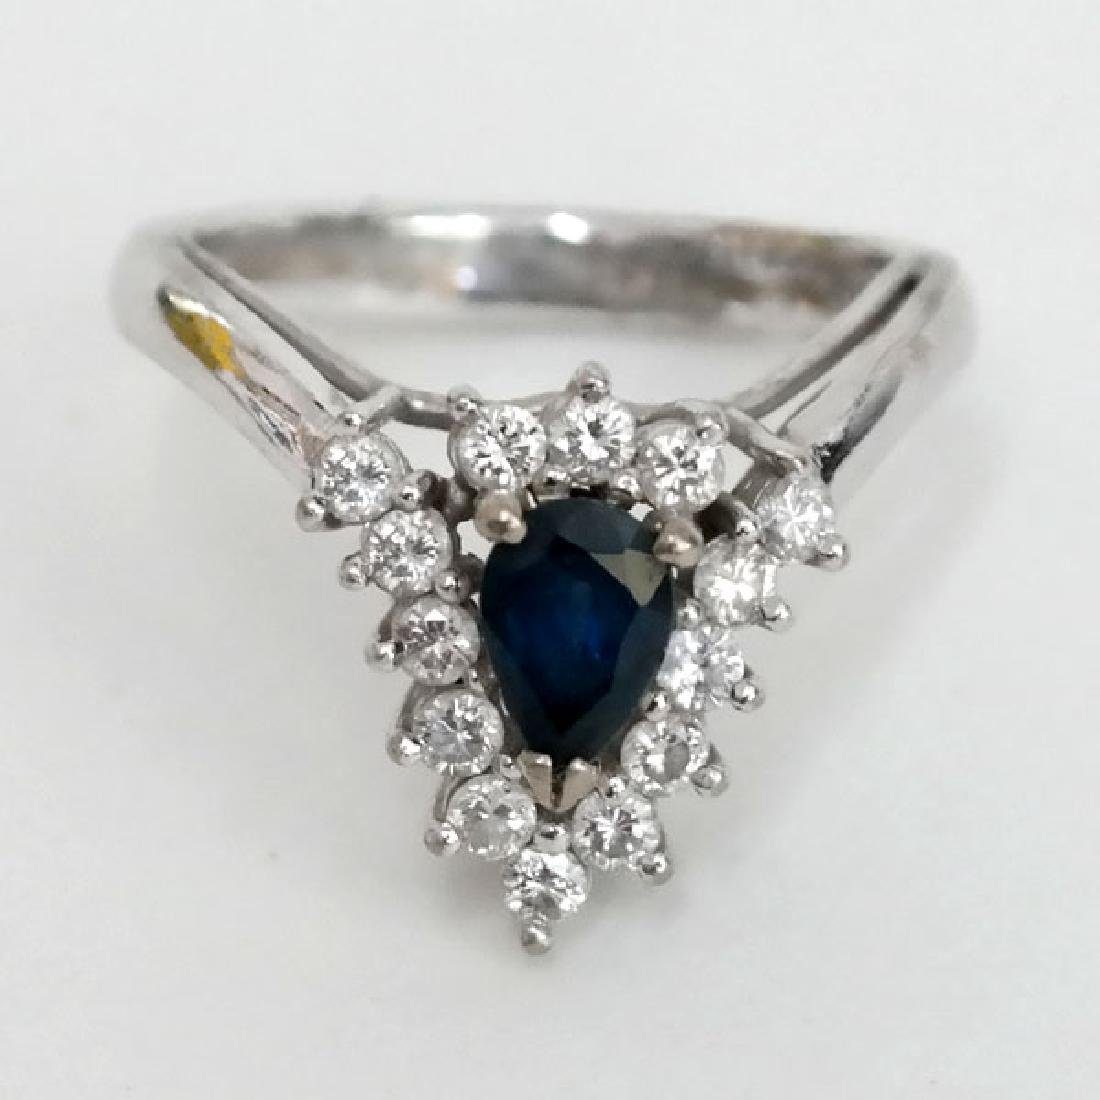 14k white gold genuine sapphires and diamond ring. Size